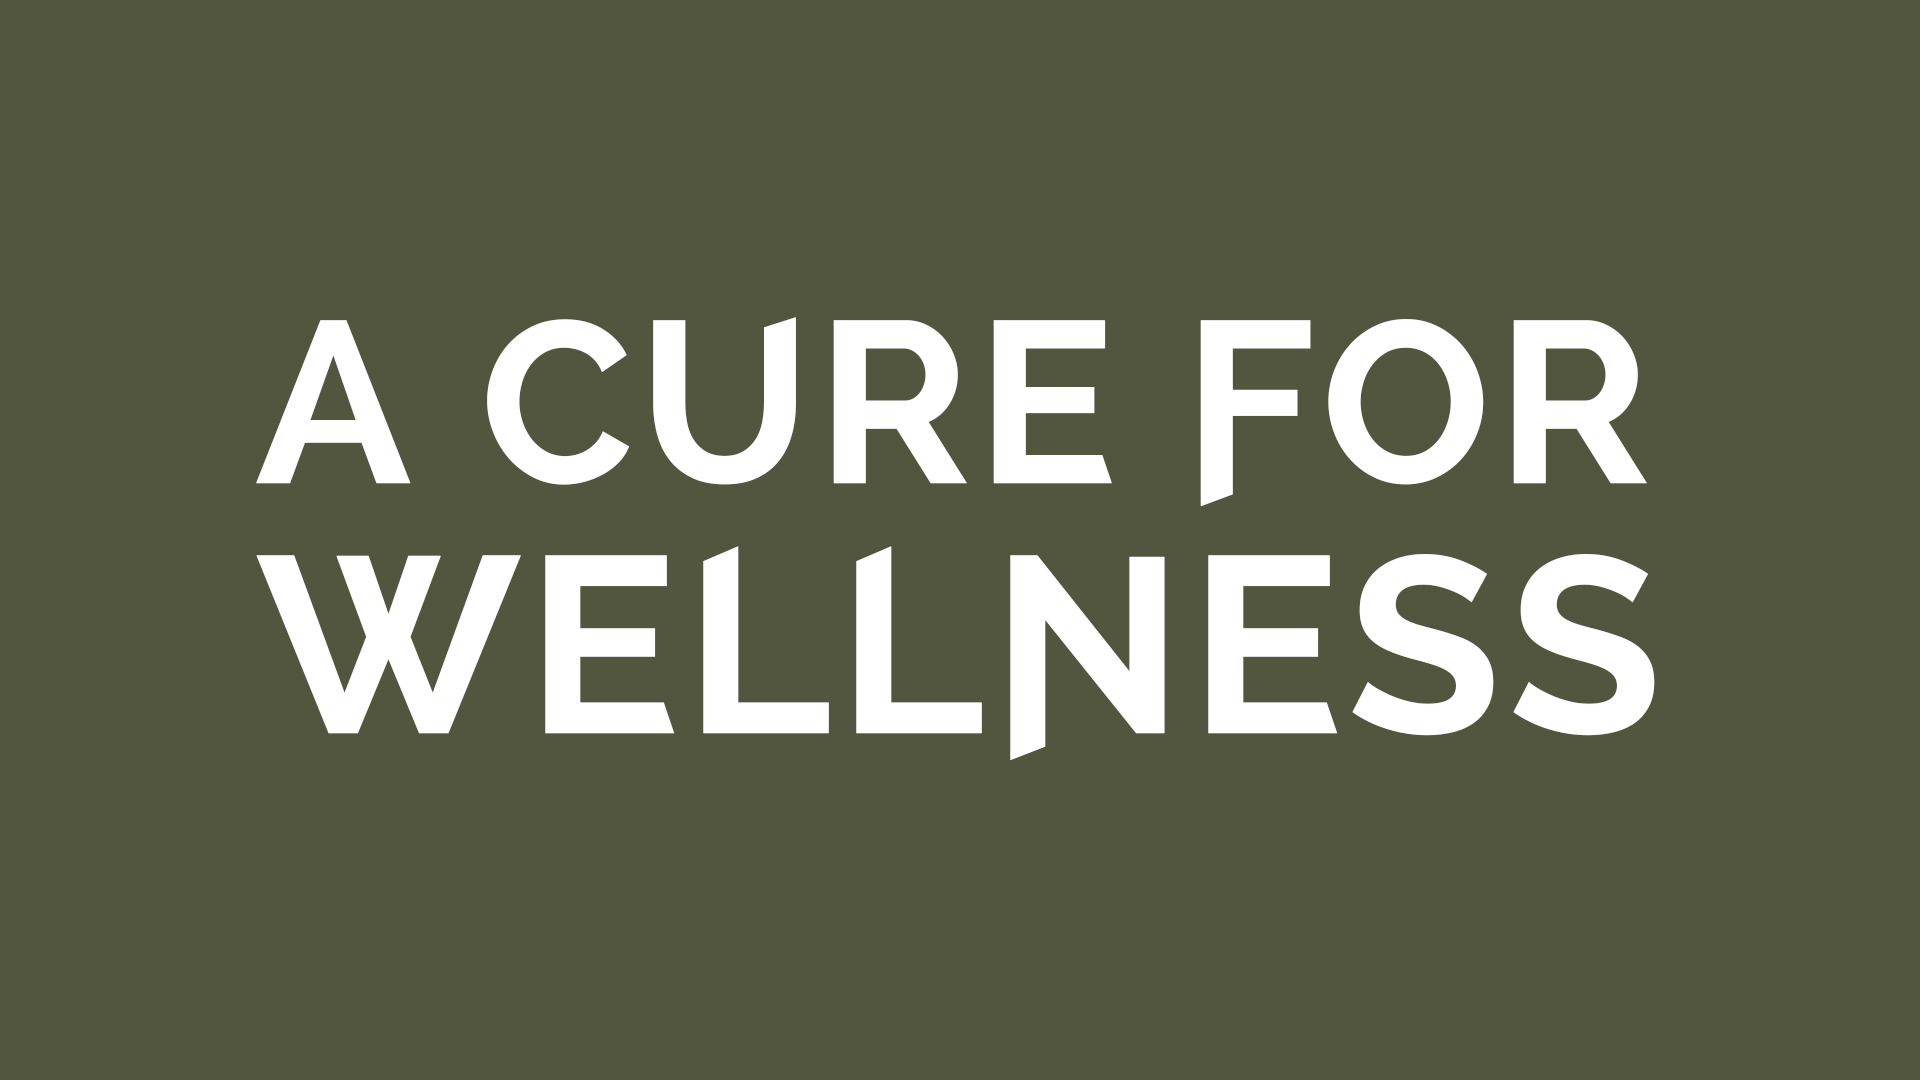 A CURE FOR WELLNESS - Duplicate